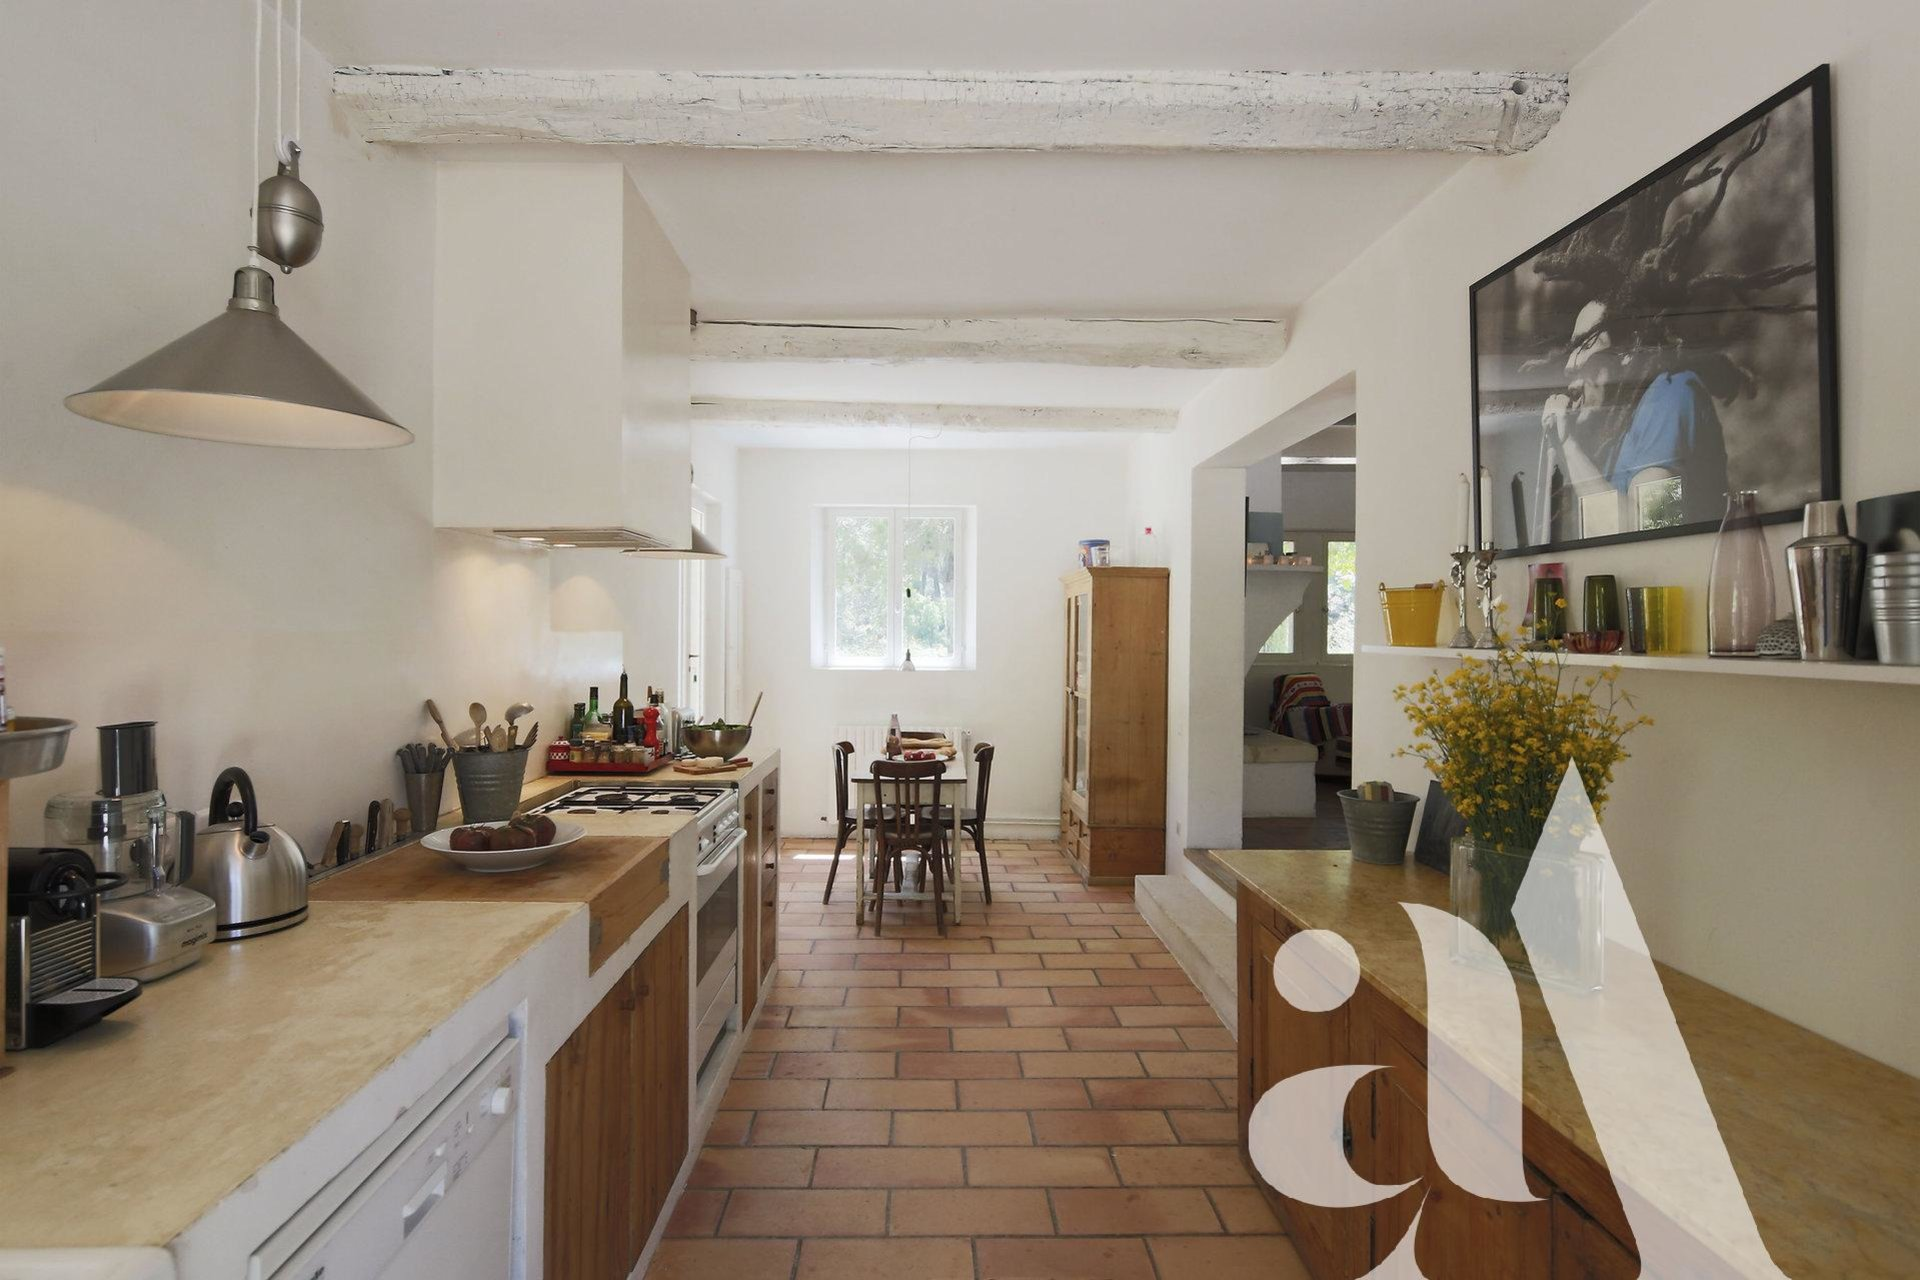 MAS HARMONIE - Alpilles rental Holiday - Provence - 5 BEDROOMS - 10 PEOPLE